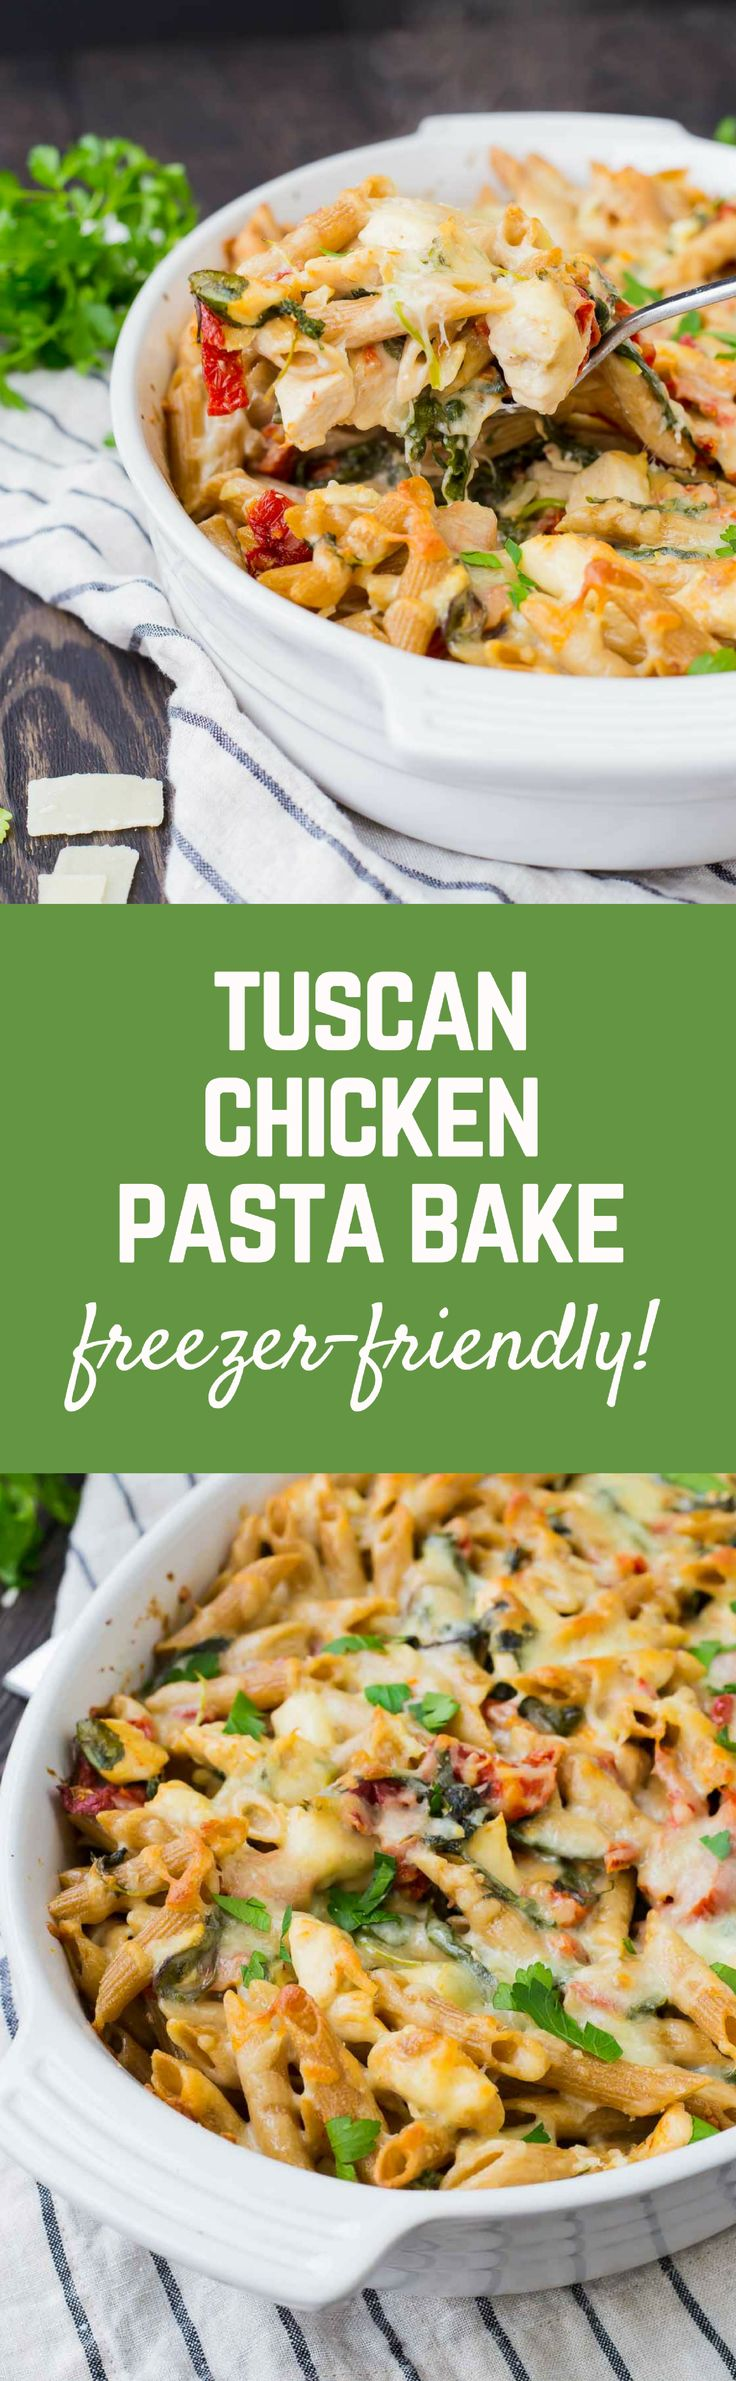 Creamy, flavorful, and healthy, this Chicken Tuscan Pasta Bake is perfect to eat right away or to prep ahead and freezer for another day. Great for sharing with people in need of a meal, too! Get the recipe on RachelCooks.com!